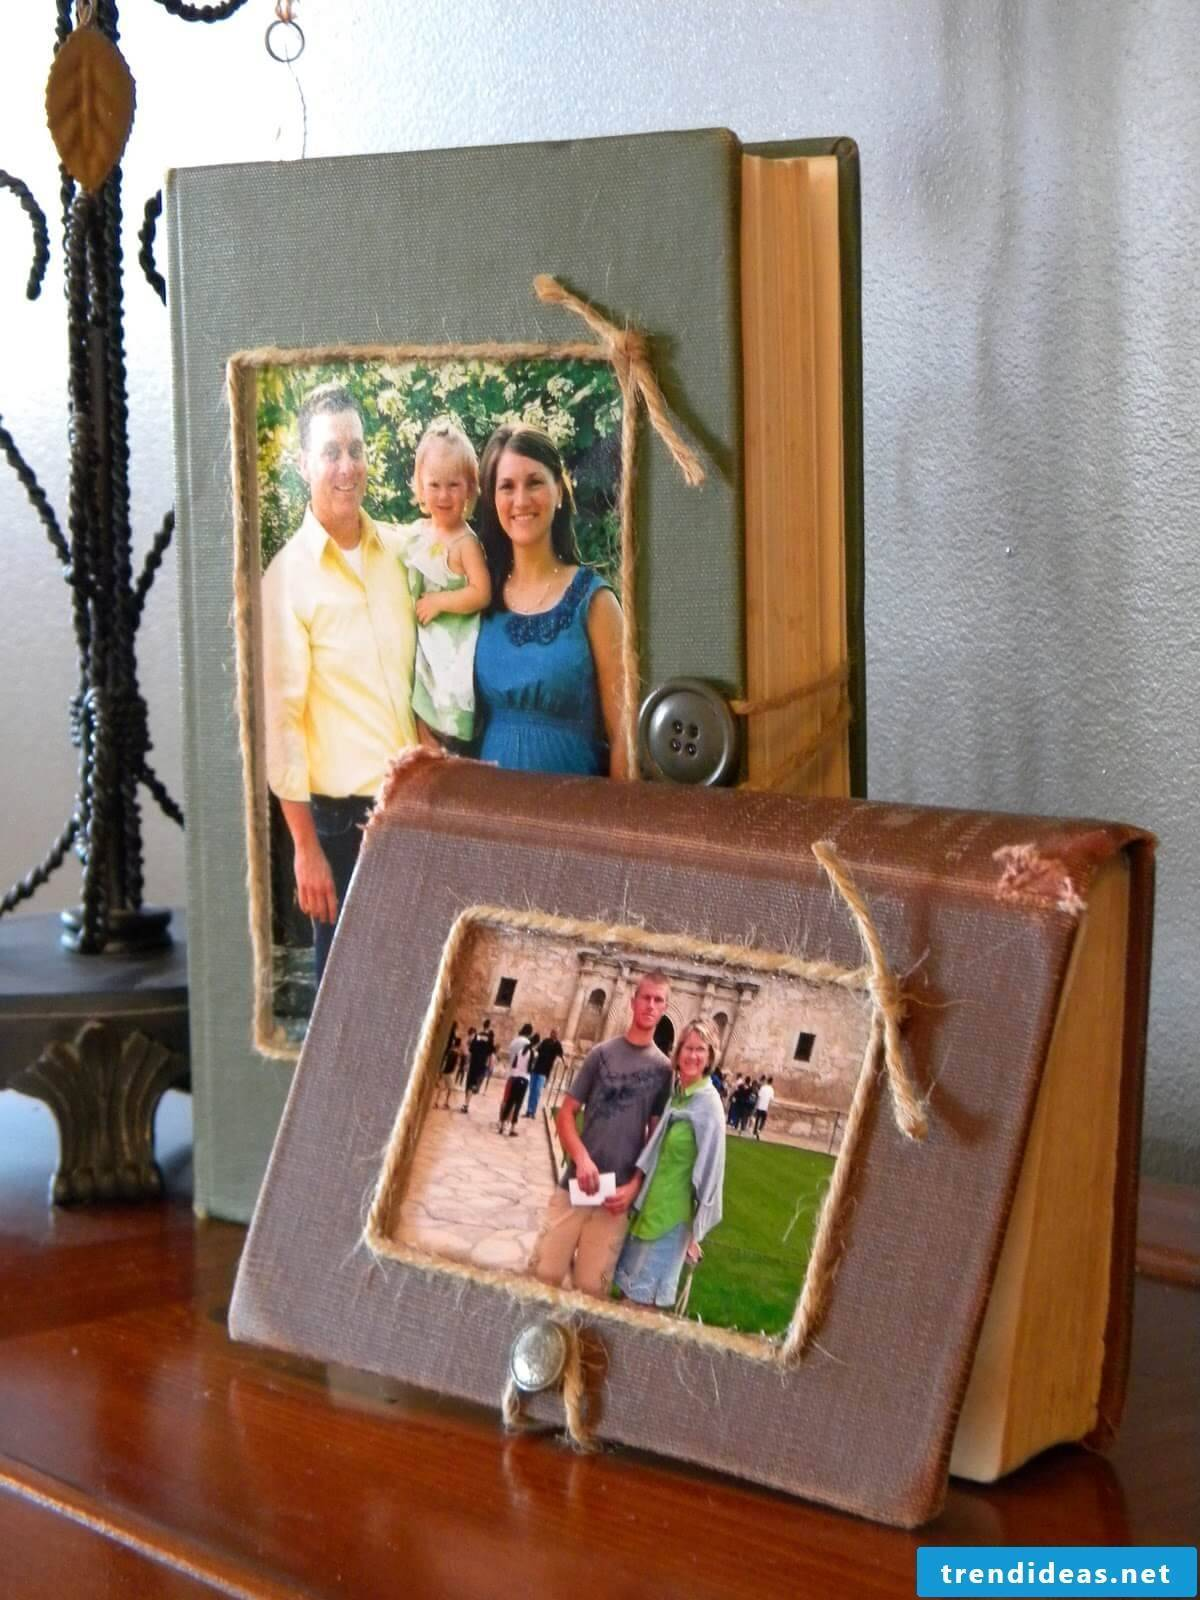 Make a creative picture frame yourself